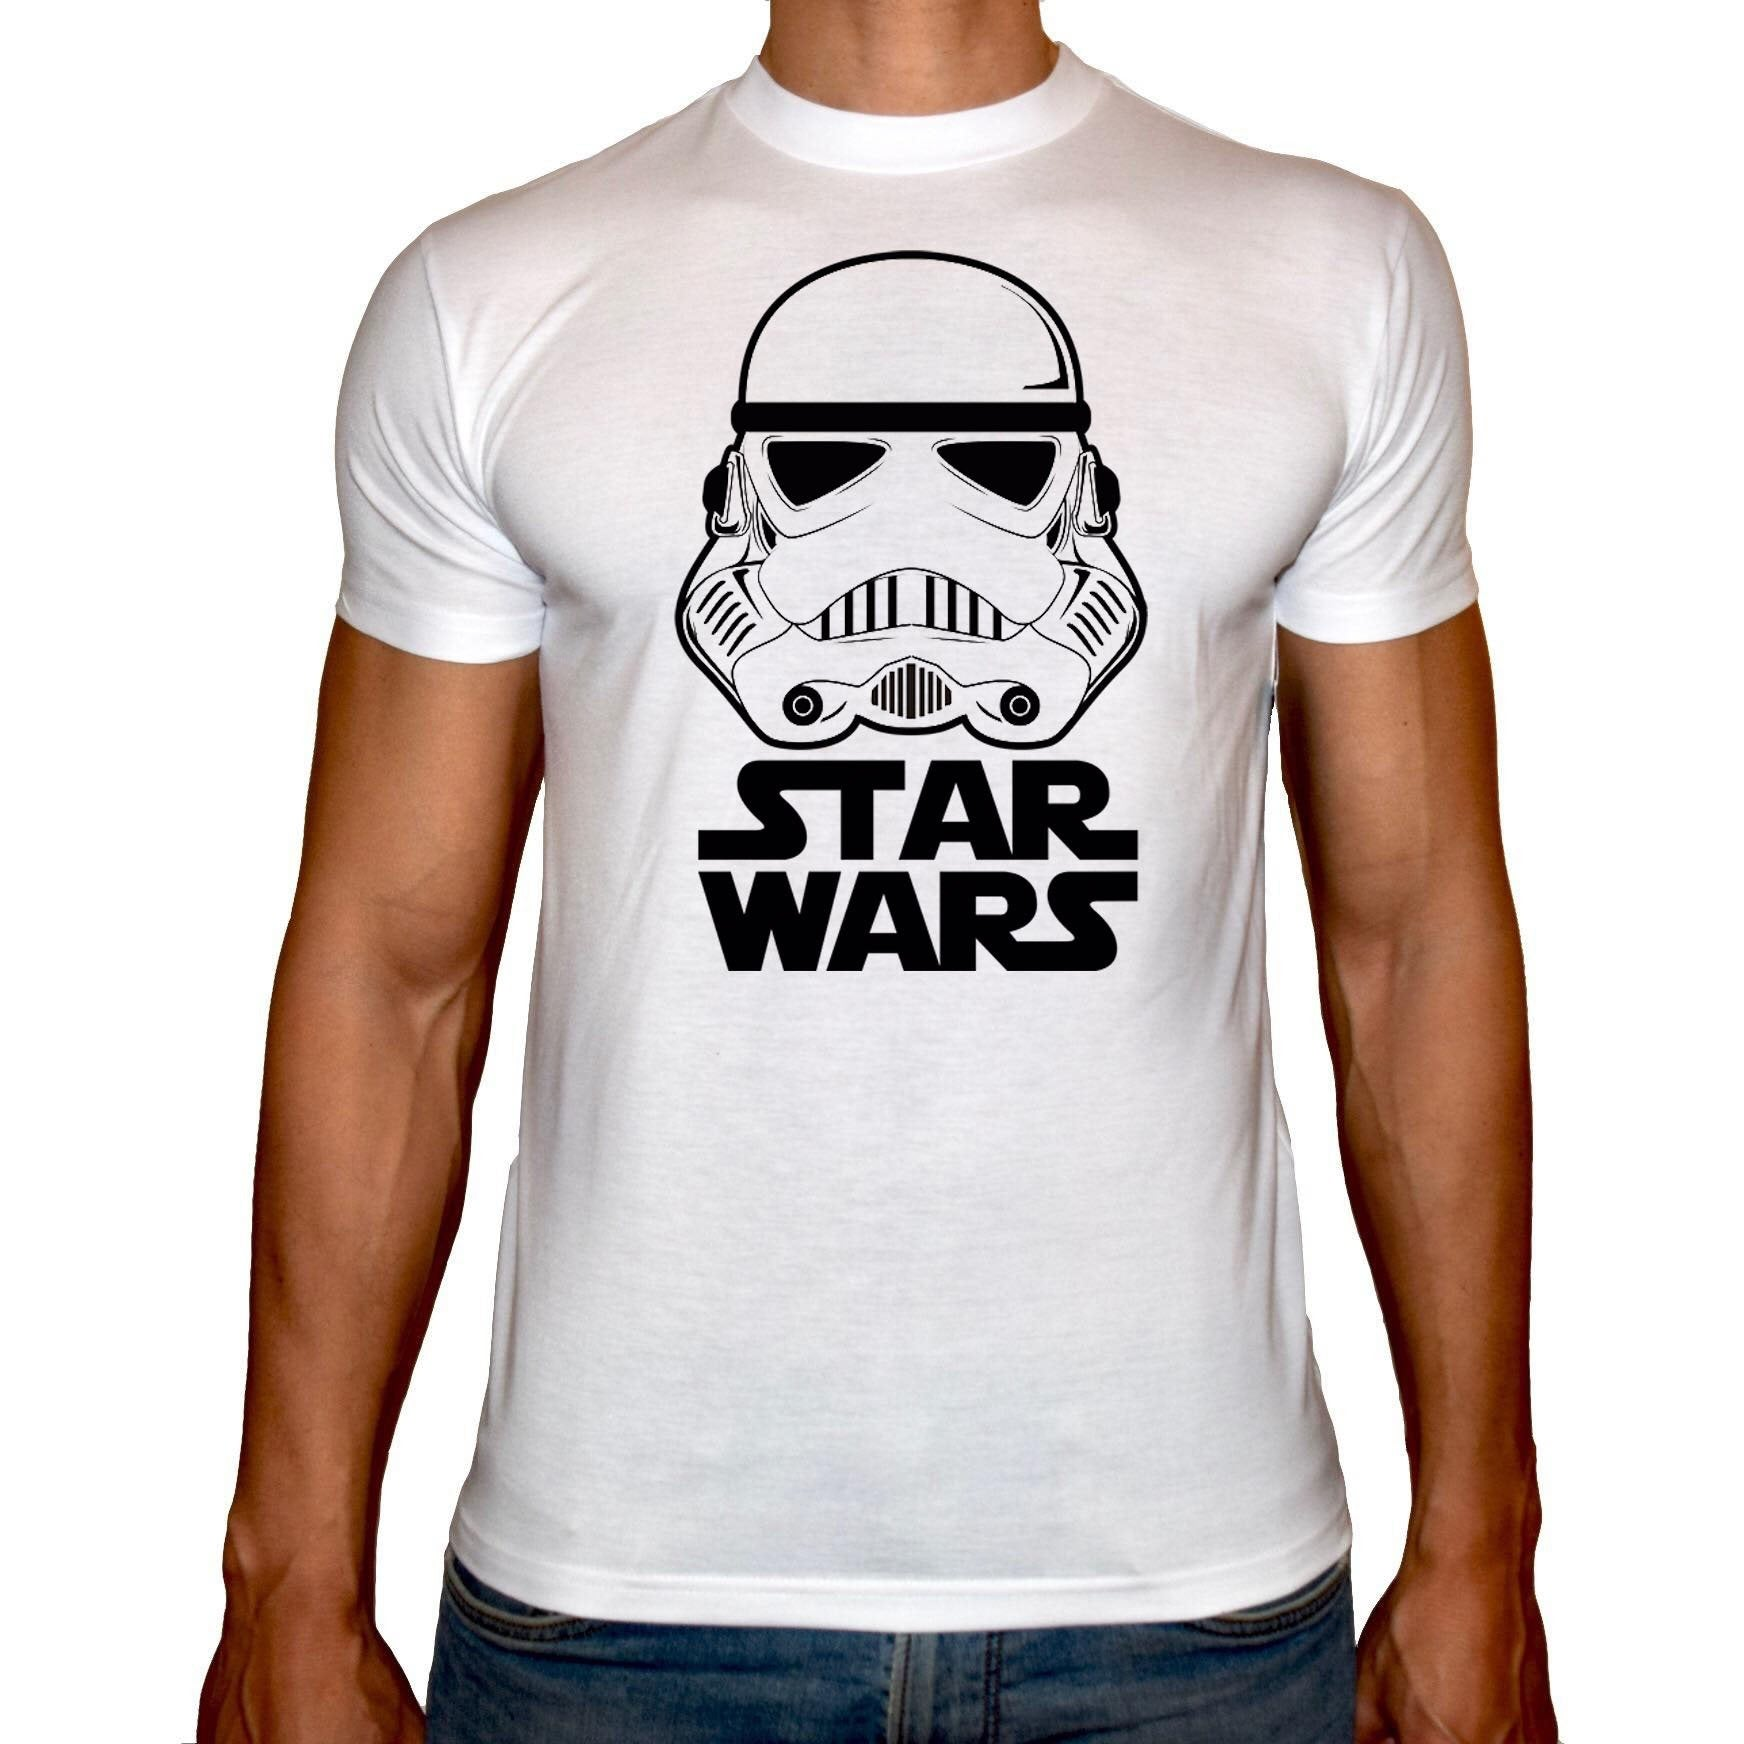 Phoenix WHITE Round Neck Printed Shirt Men (Star wars)